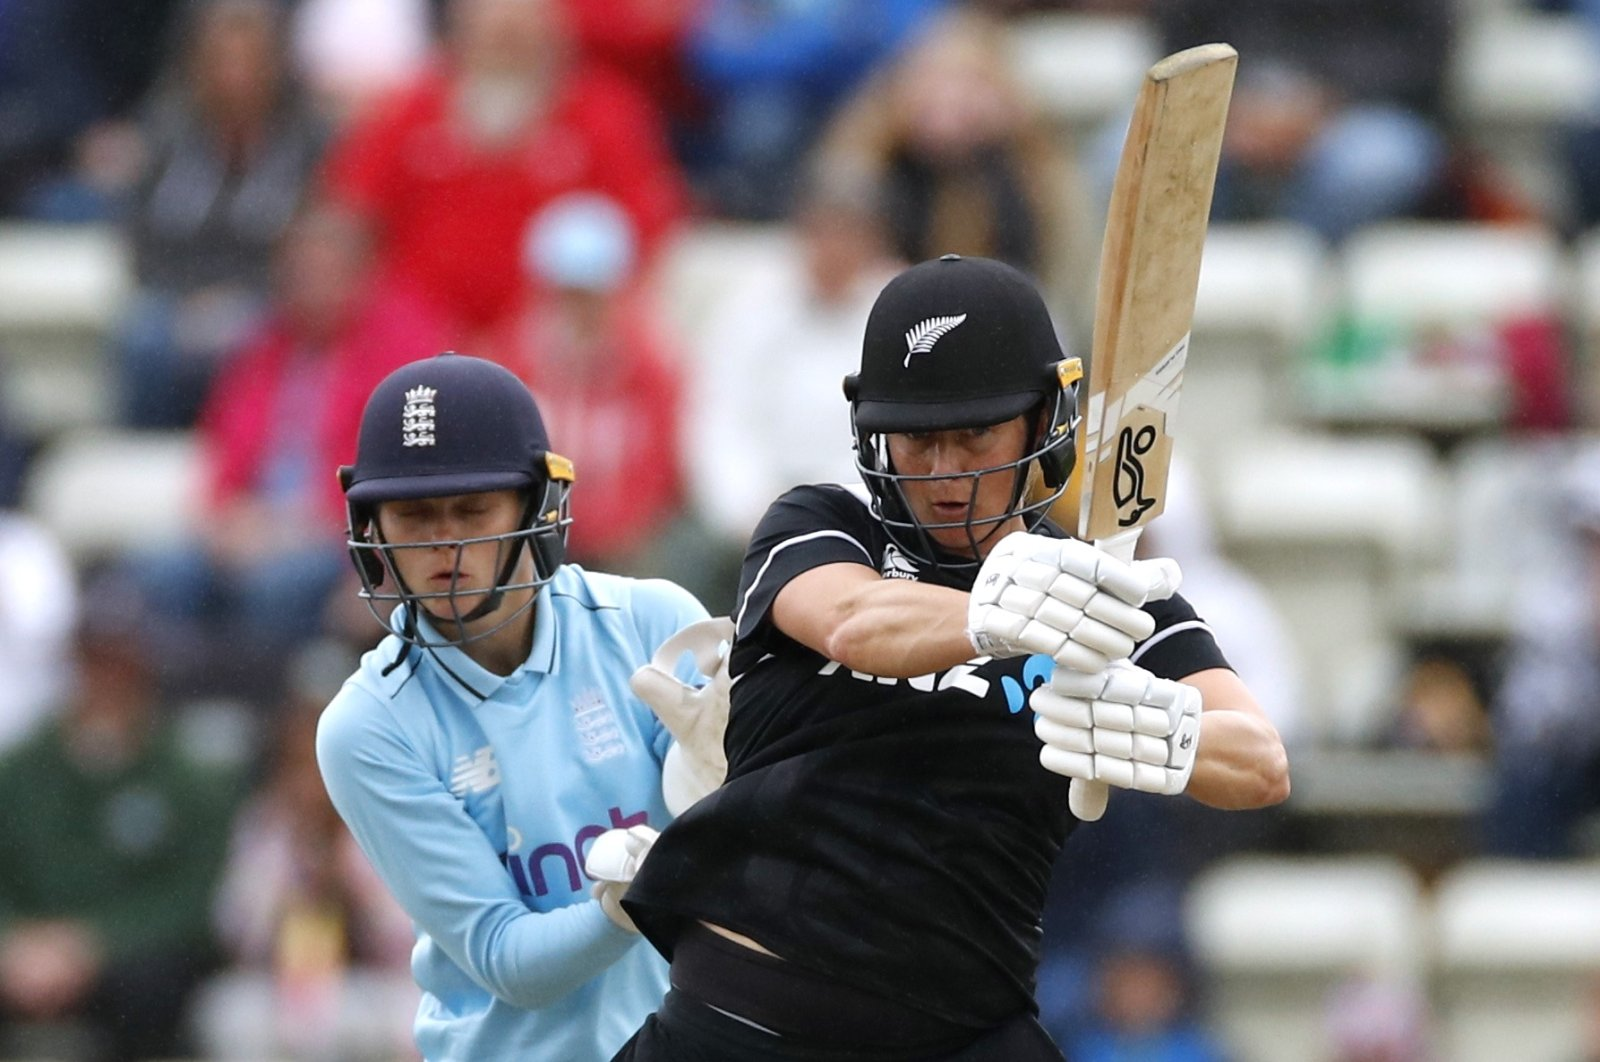 New Zealand batter Sophie Devine (R) in action in a women's One Day International match against England at the County Ground, Worcester, England, Sept. 19, 2021. (Reuters Photo)